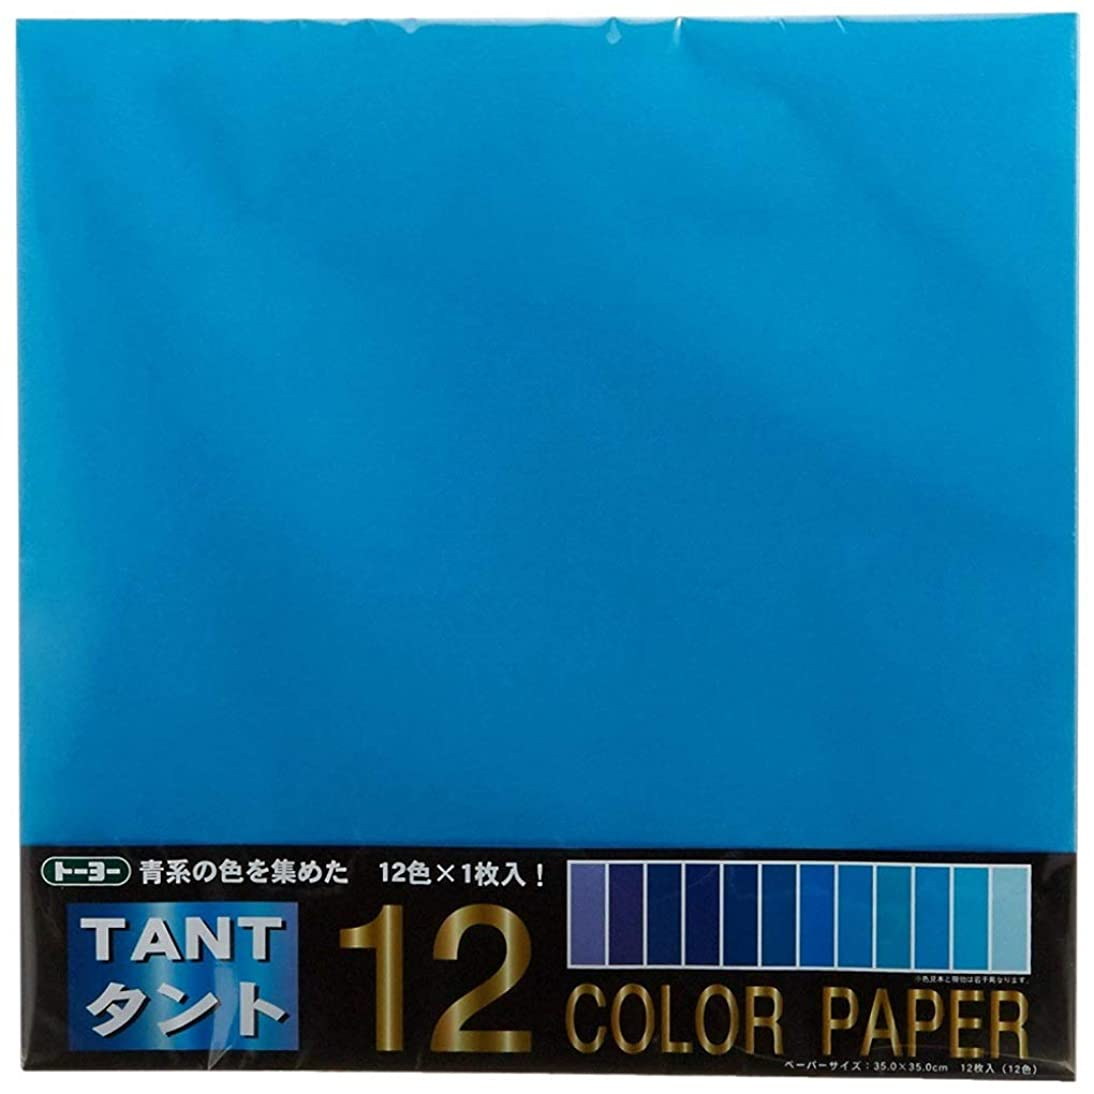 TOYO Tant12 Origami Color Paper 13.8inch square 12 sheets BLUE [Import from Japan]